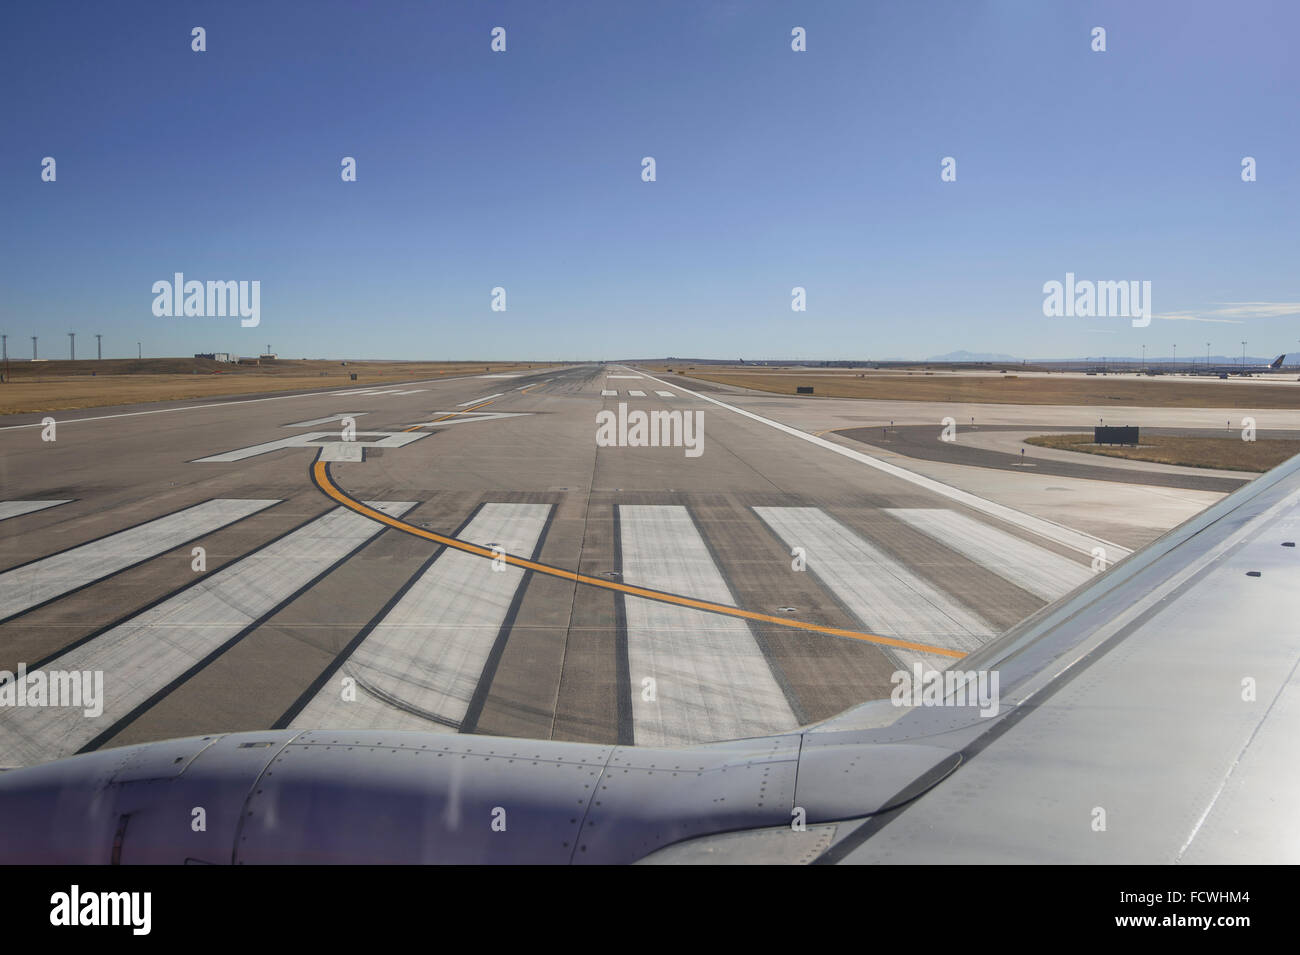 Airport Runway With Airplane Wing, Denver, USA - Stock Image